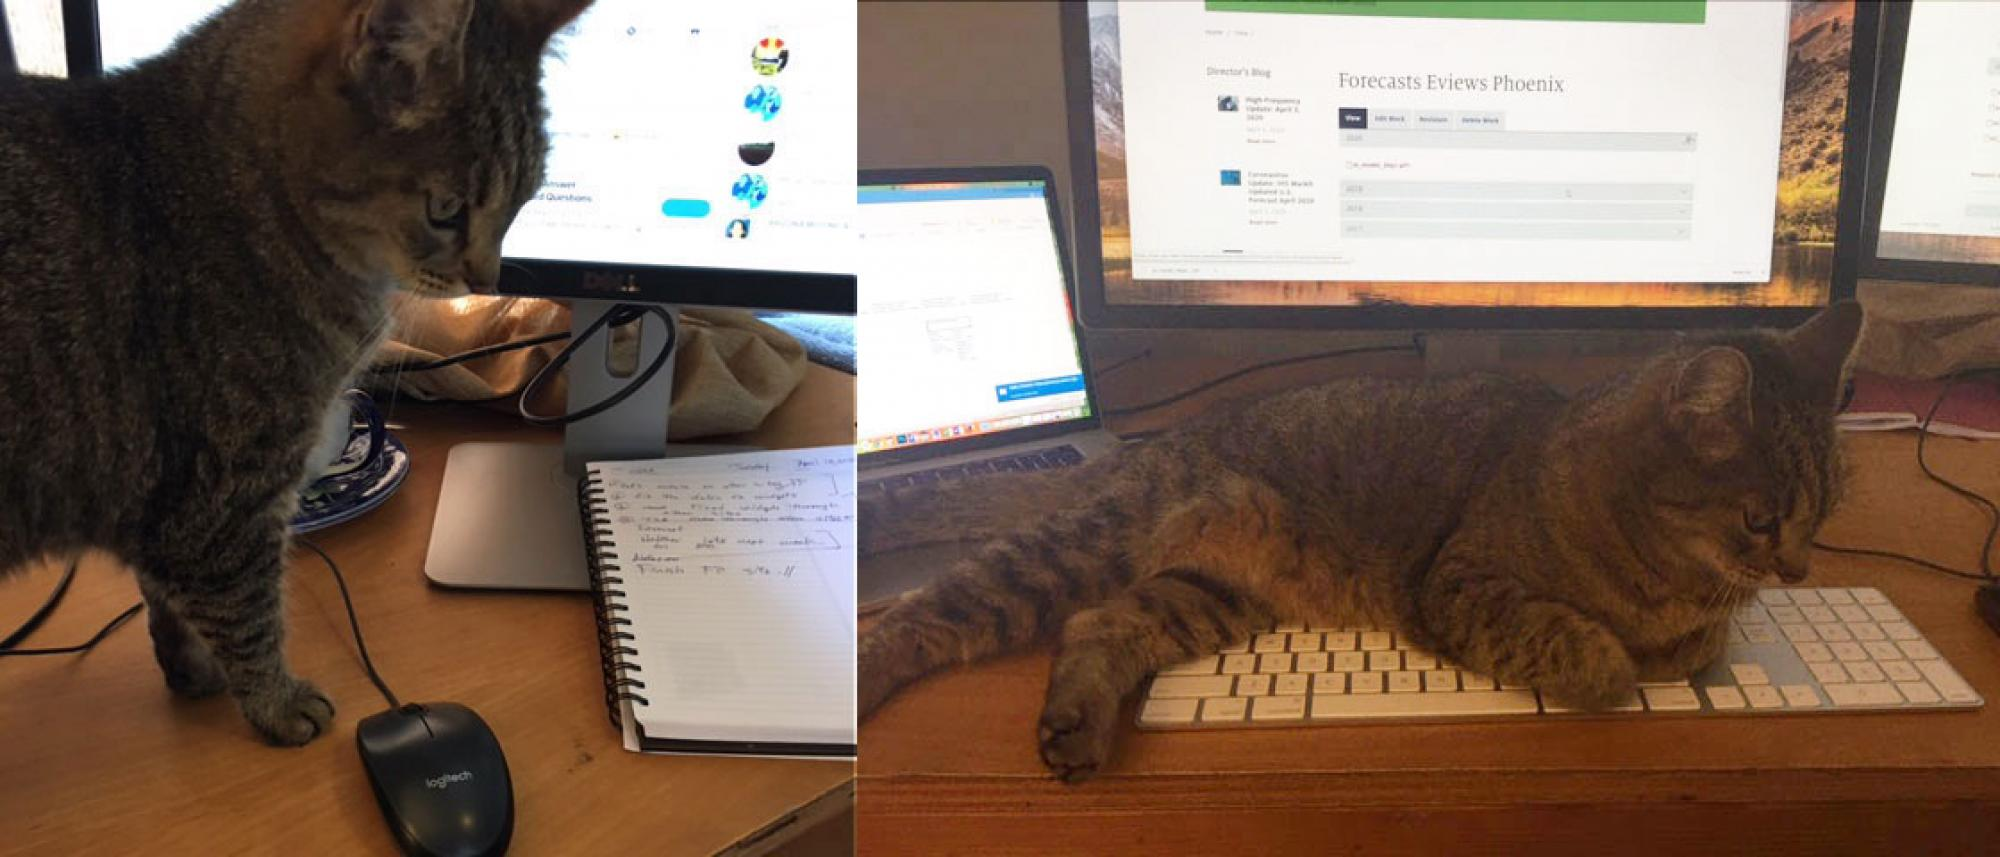 My kitty Violet was hunting my mouse, but then as soon as I turned around, she settled for a nap on the keyboard. Cats! Go figure! – Maile Nadelhoffer, website designer/developer, Eller College of Management